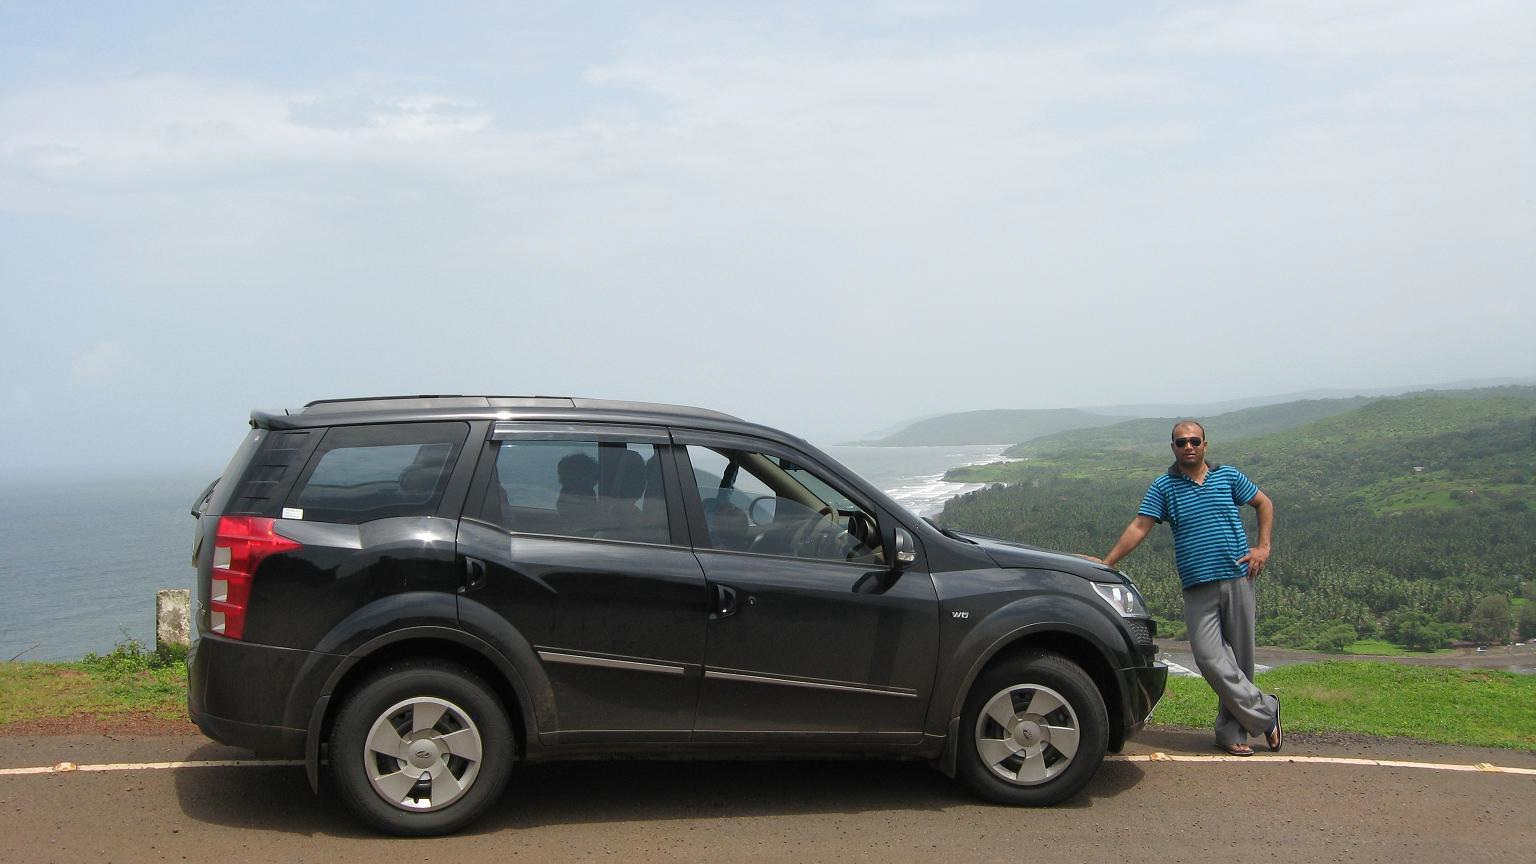 XUV 500 W6 from 5 month to 2+ year of ownership  - MAHINDRA